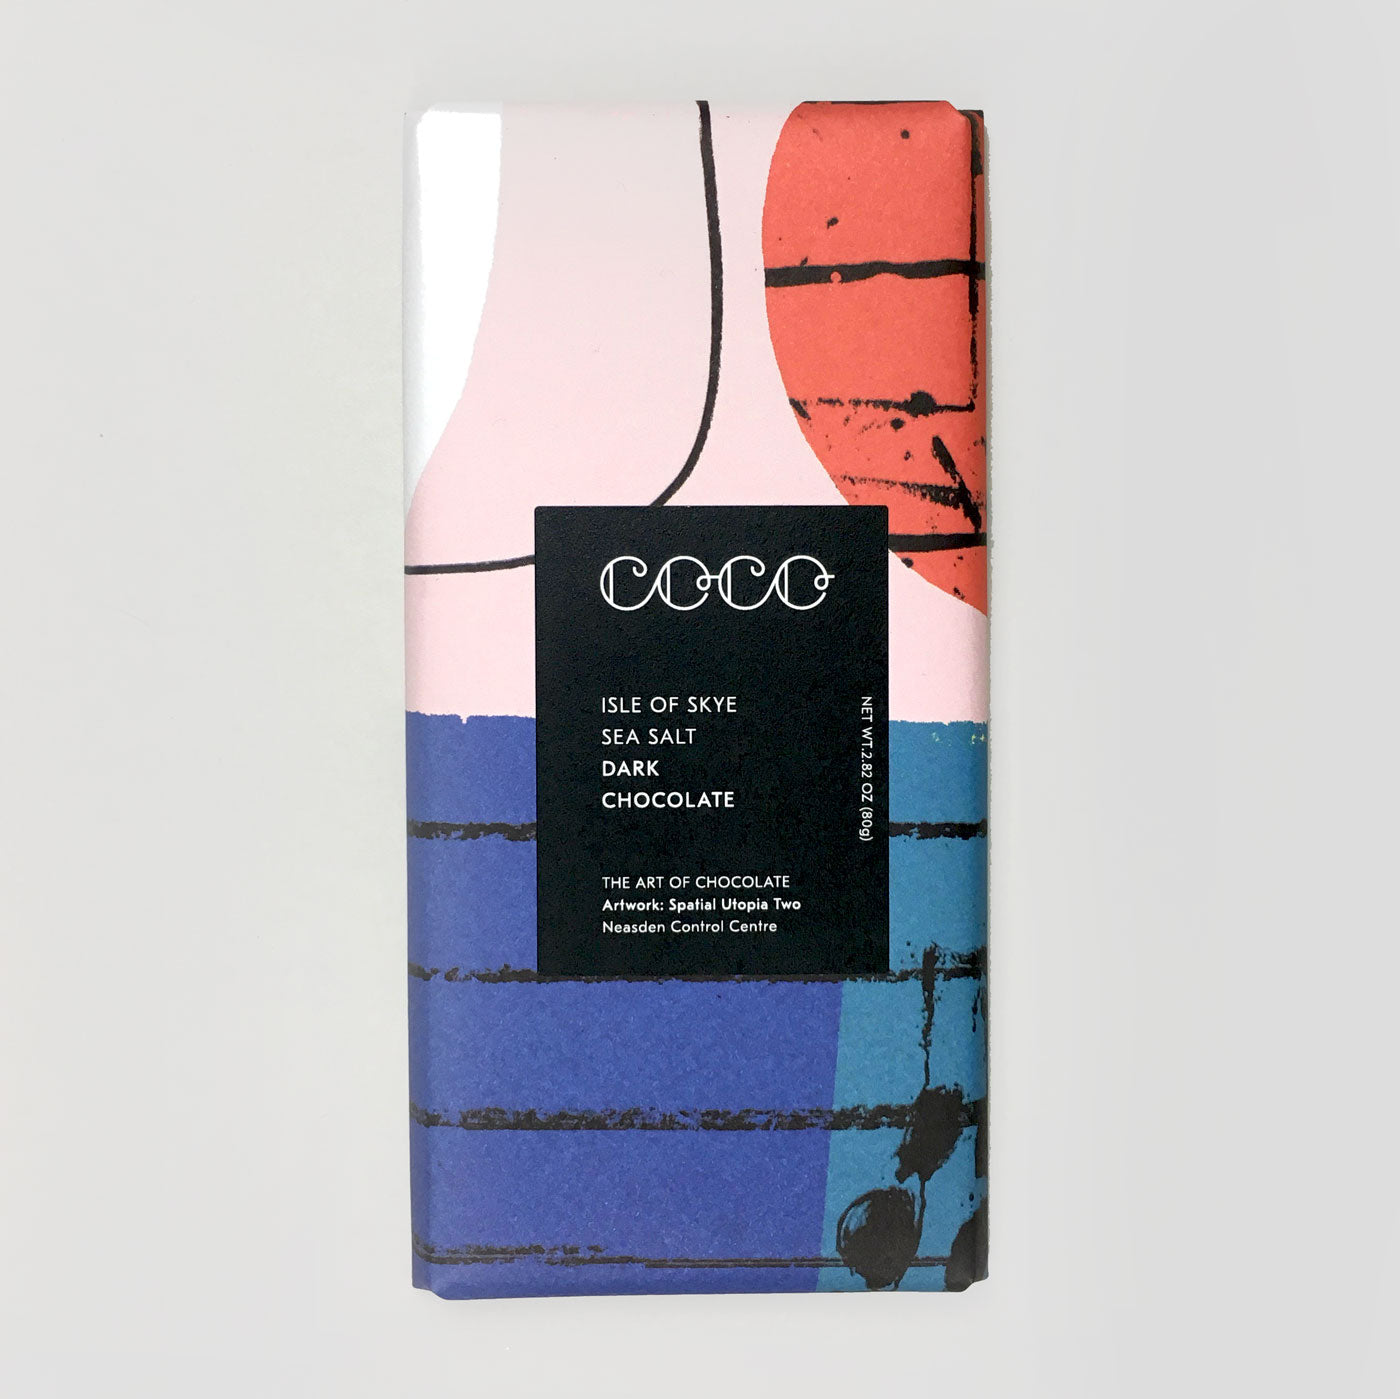 Coco Chocolatier - Isle Of Skye Sea Salt (Dark)